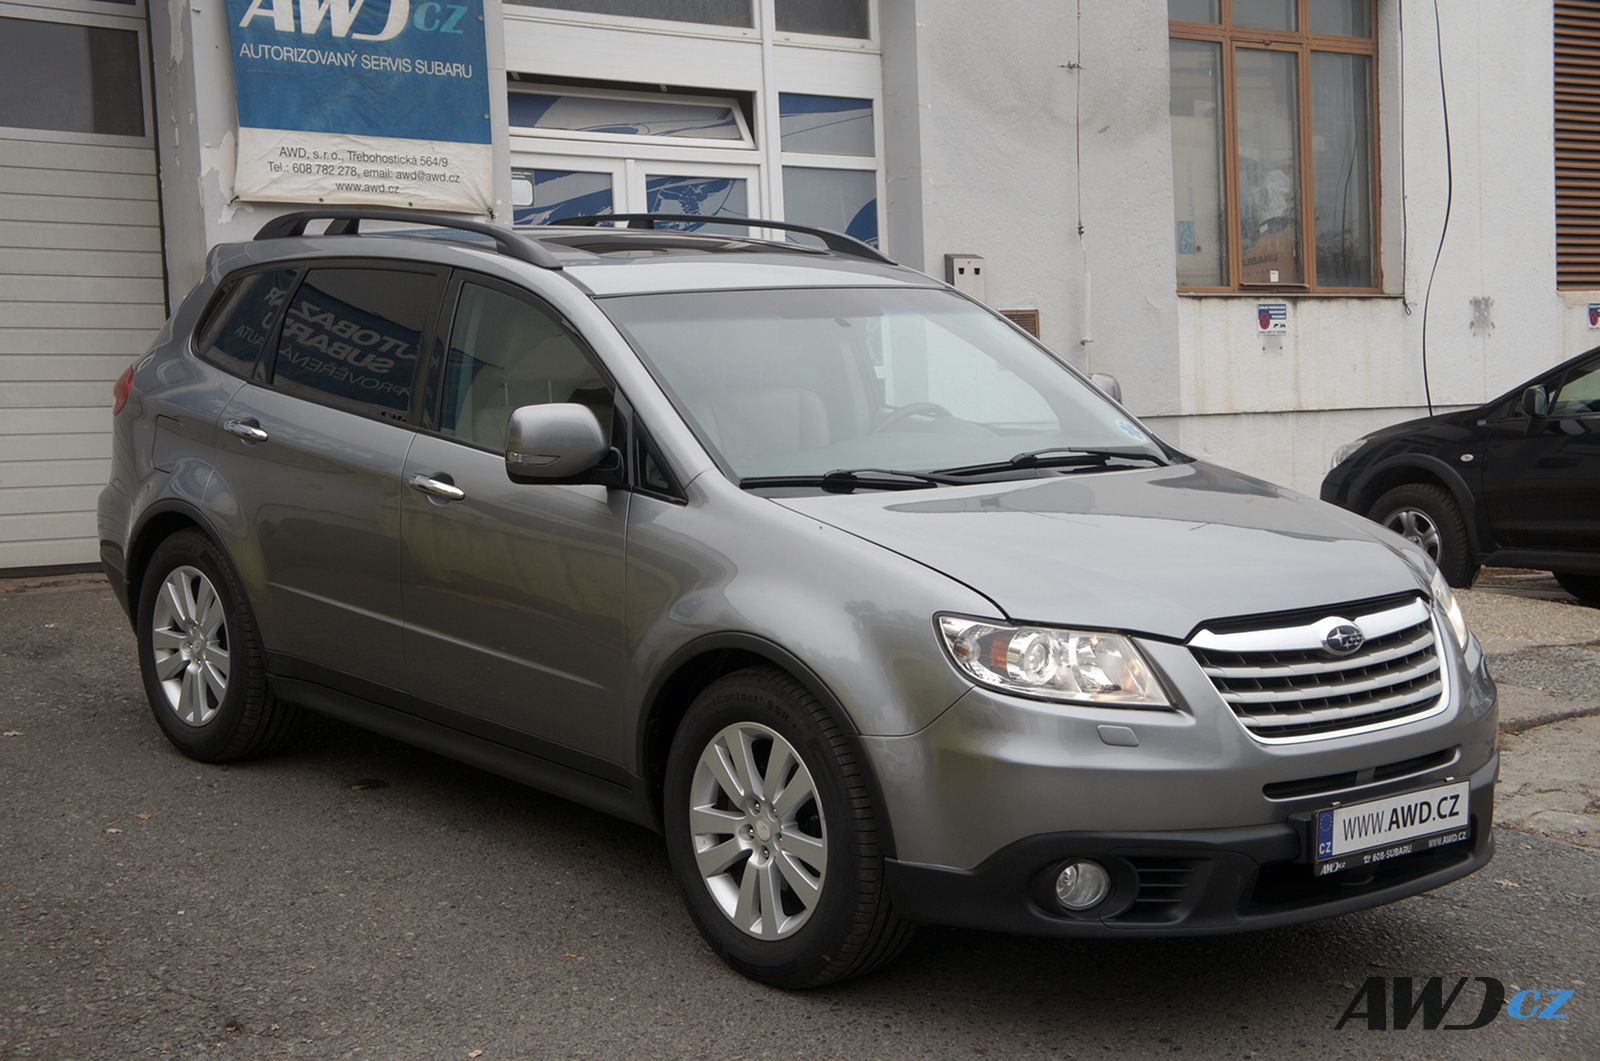 SUBARU Tribeca 3.6 Executive +2 MY2008, 295000Kč, 235000 km, 2009